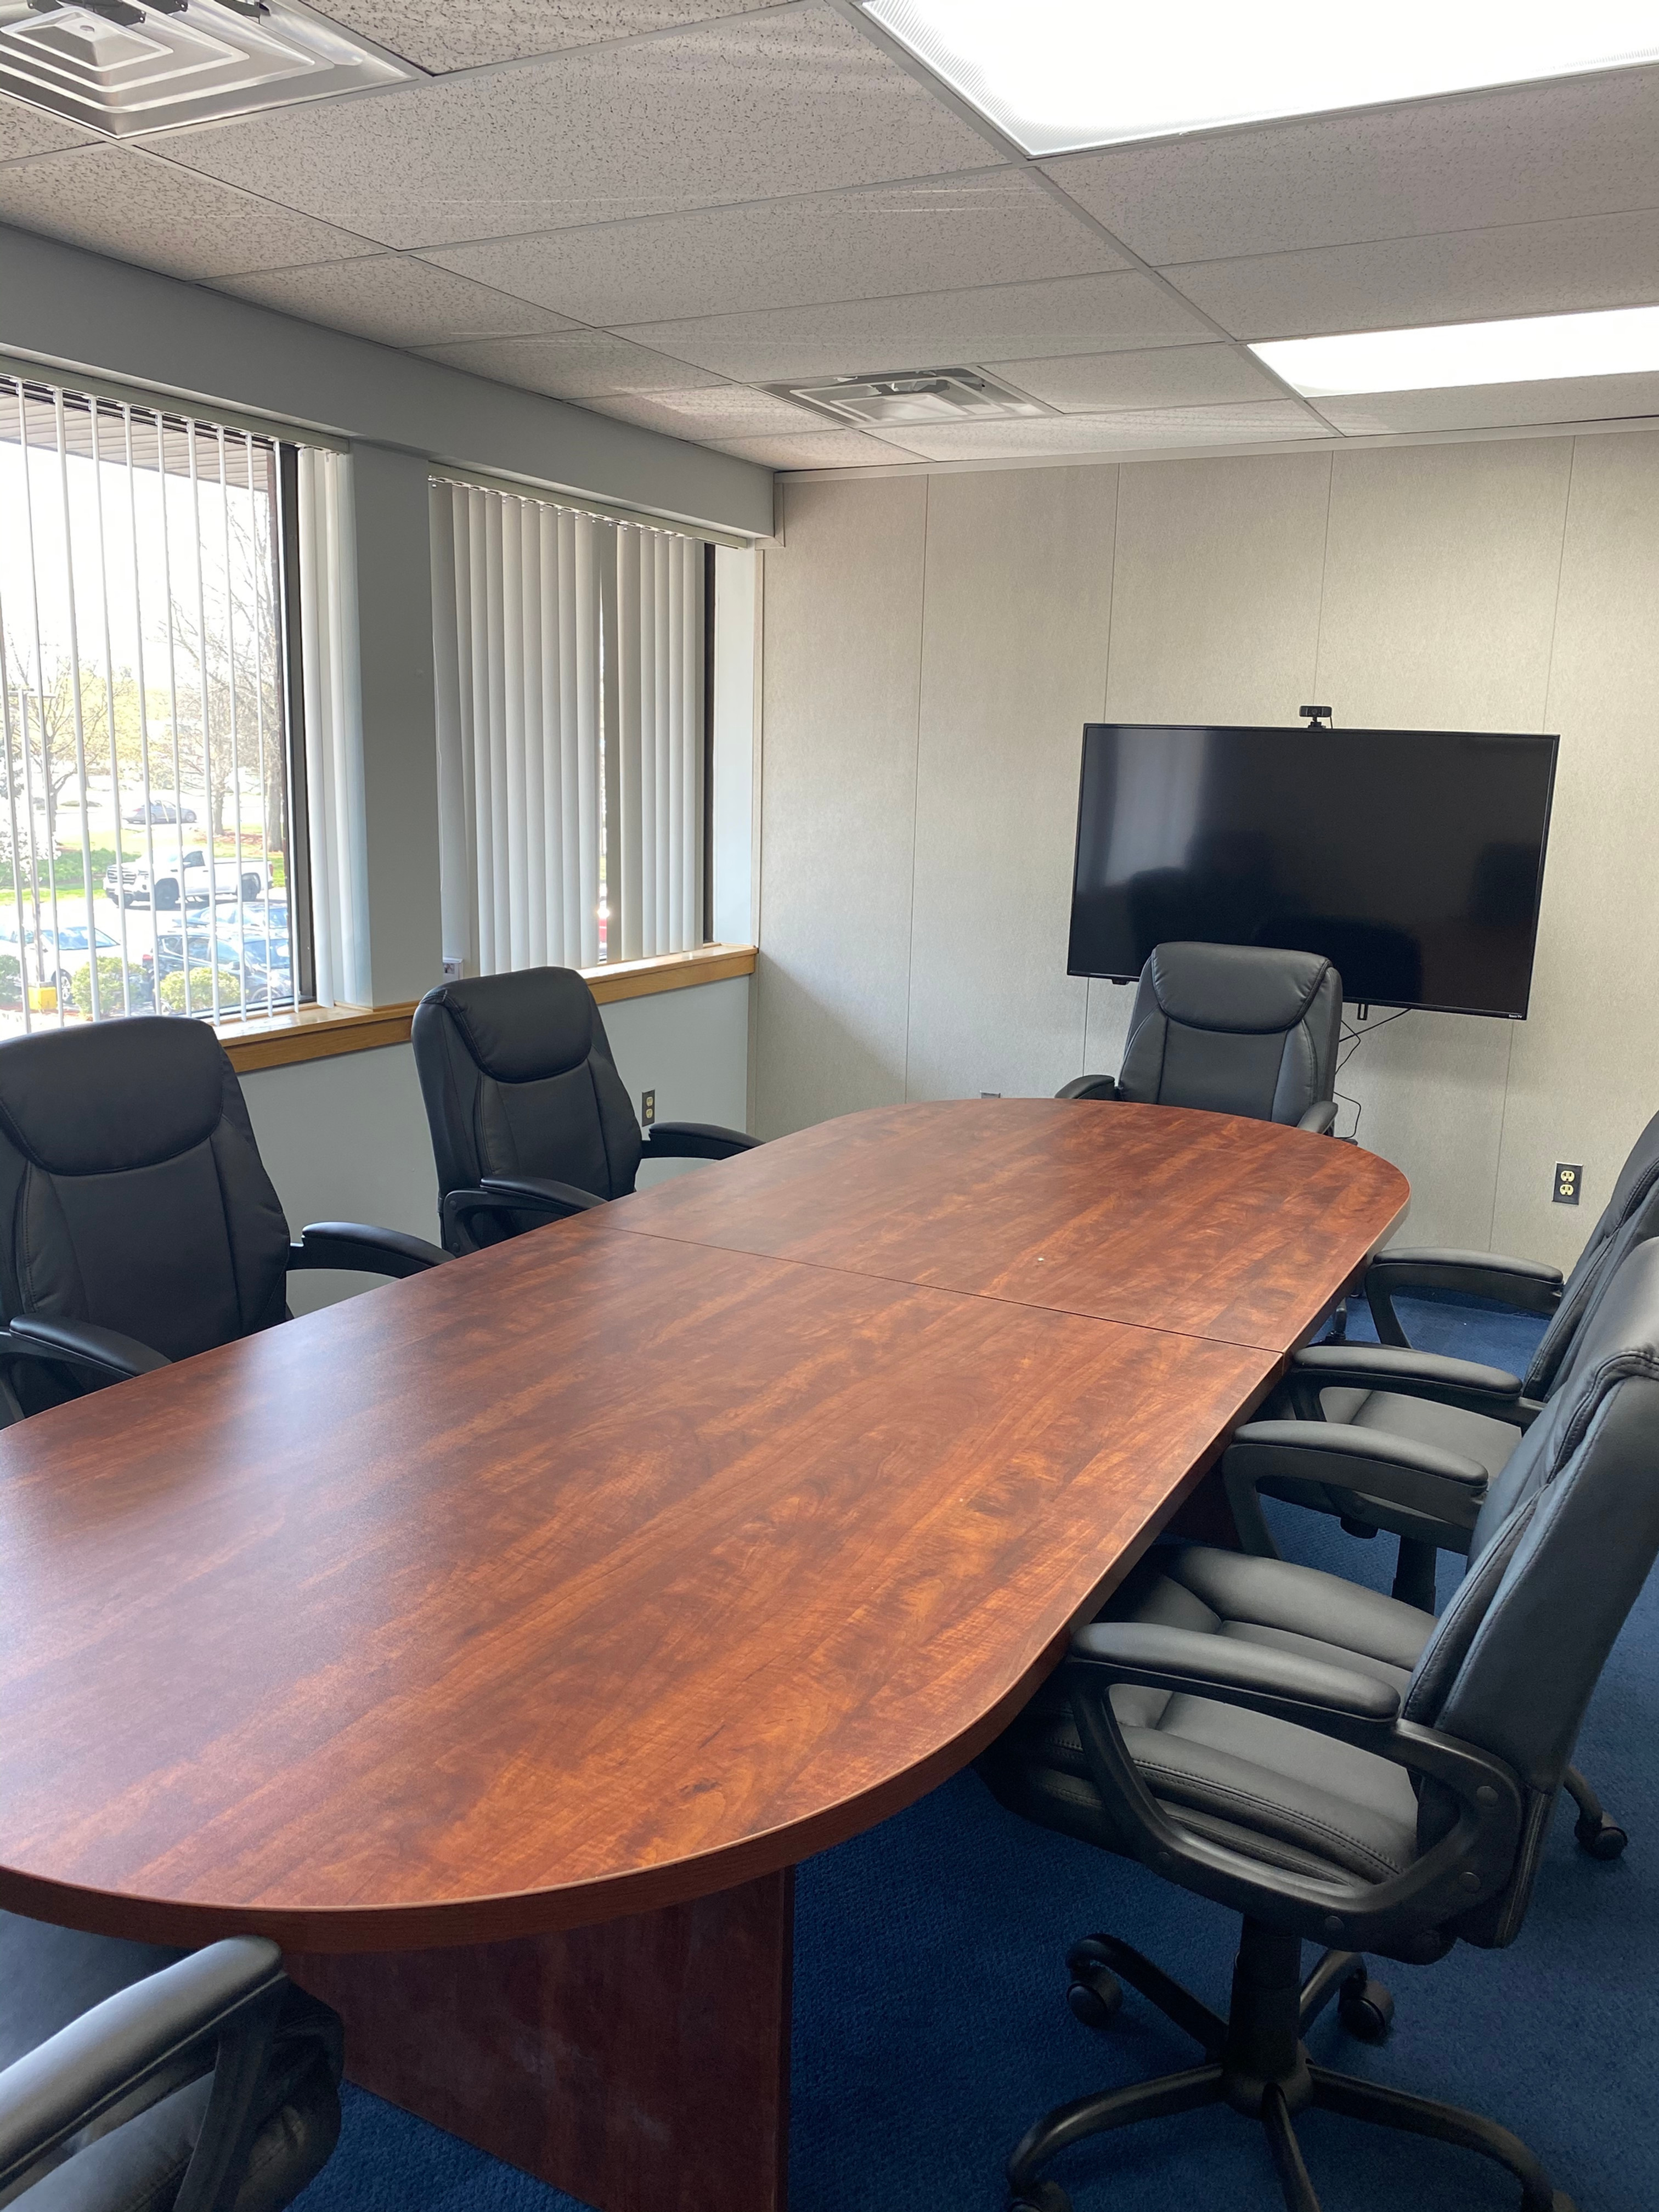 Conference Room 1: Hourly